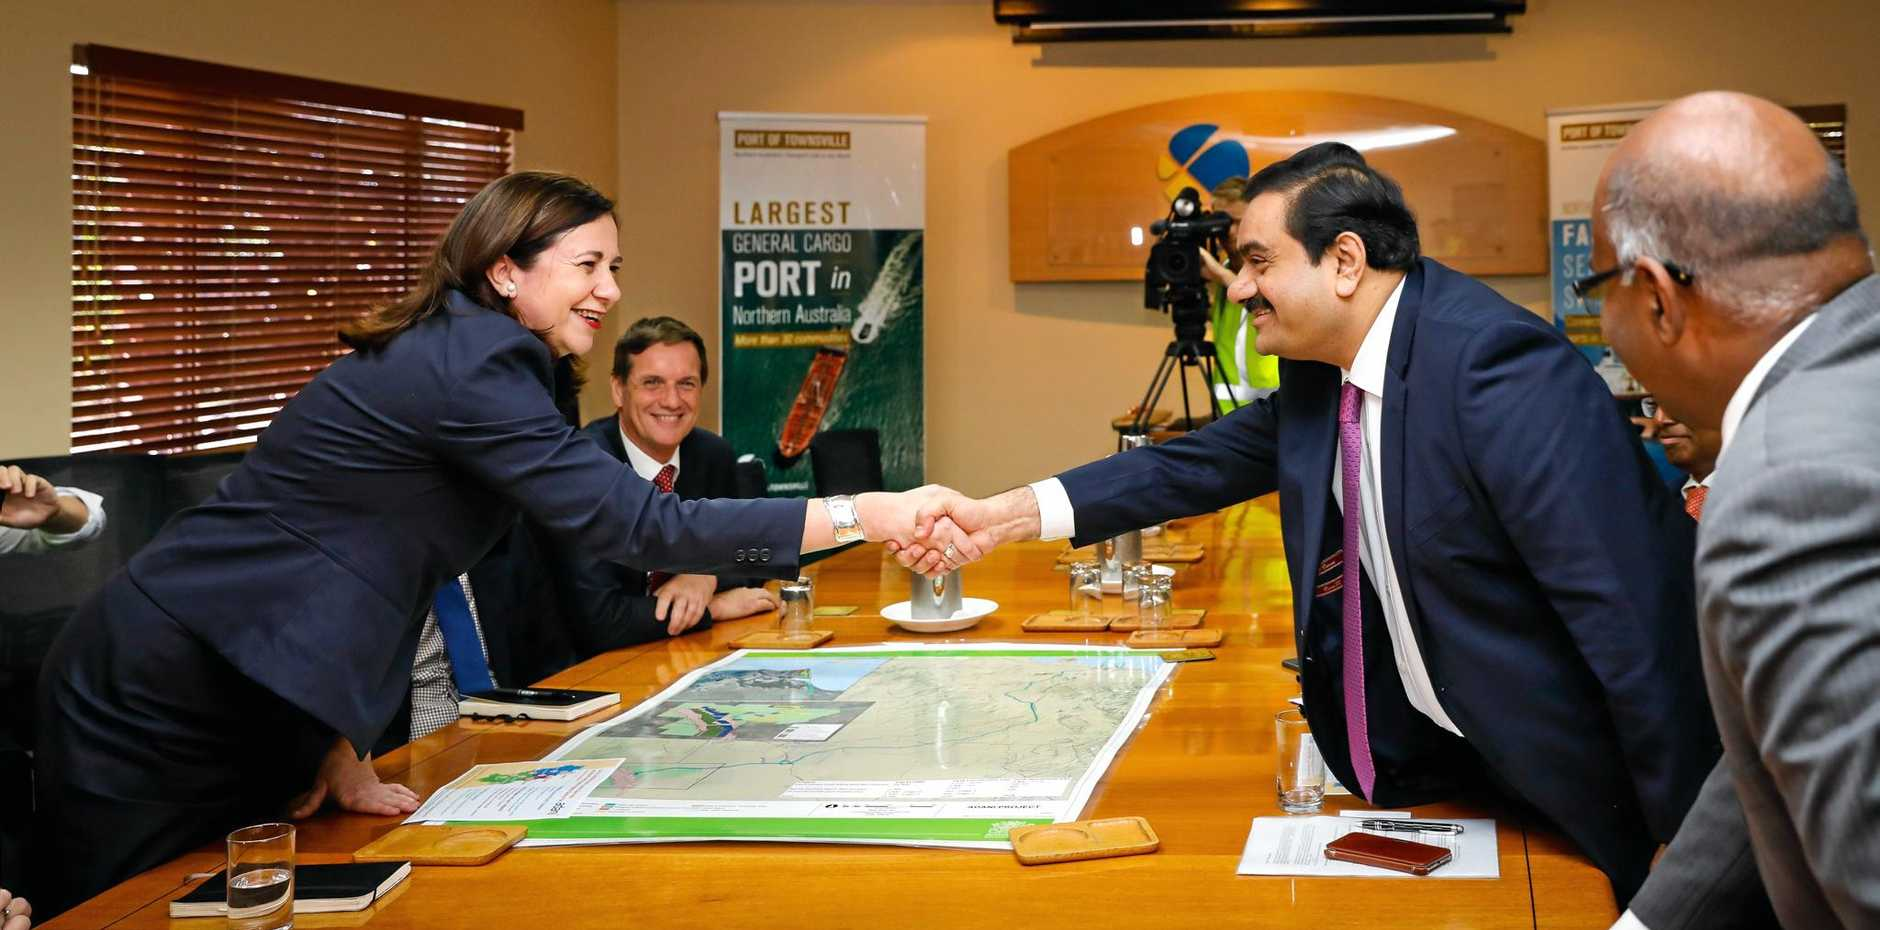 Adani Group chairman Gautam Adani and Queensland Premier Annastacia Palaszczuk meet at the Port of Townsville.